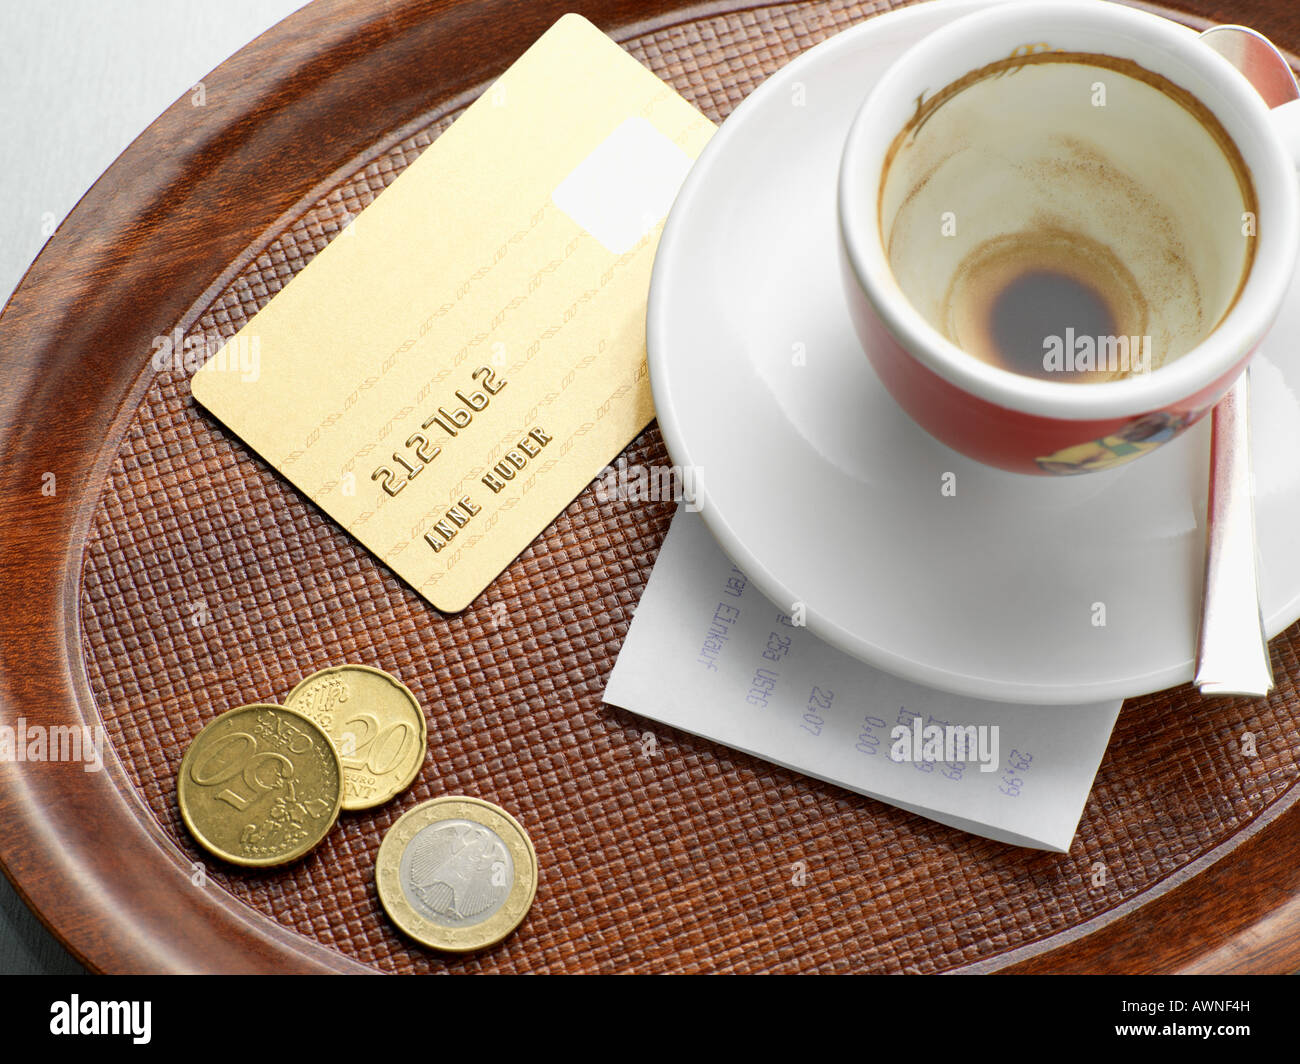 Payment for a bill - Stock Image